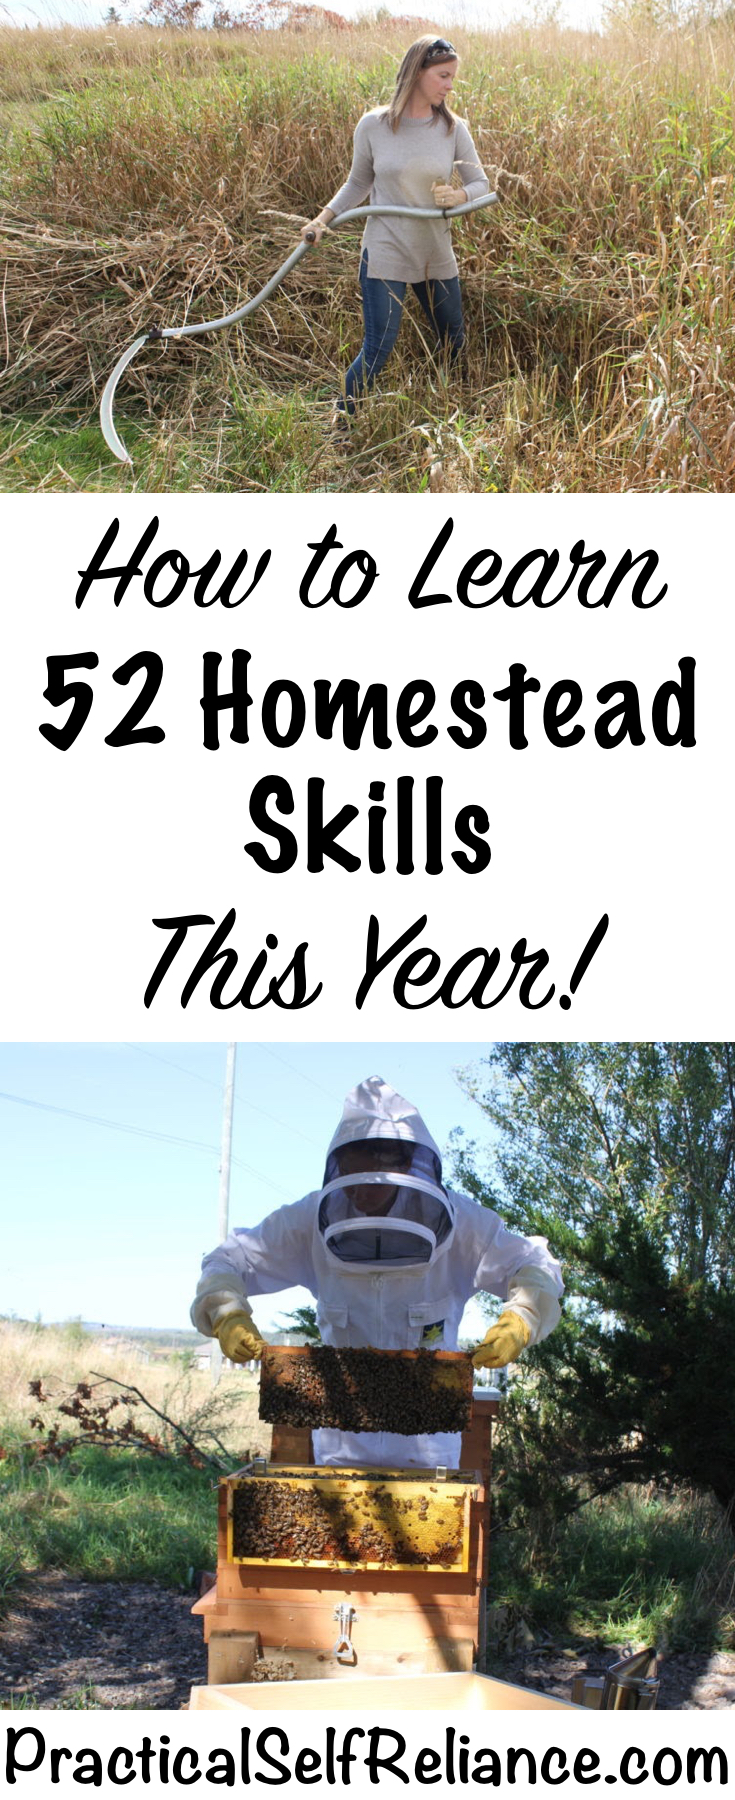 How to Learn 52 Homestead Skills This Year #skills #homestead #homesteading #selfsufficiency #selfreliant #preparedness